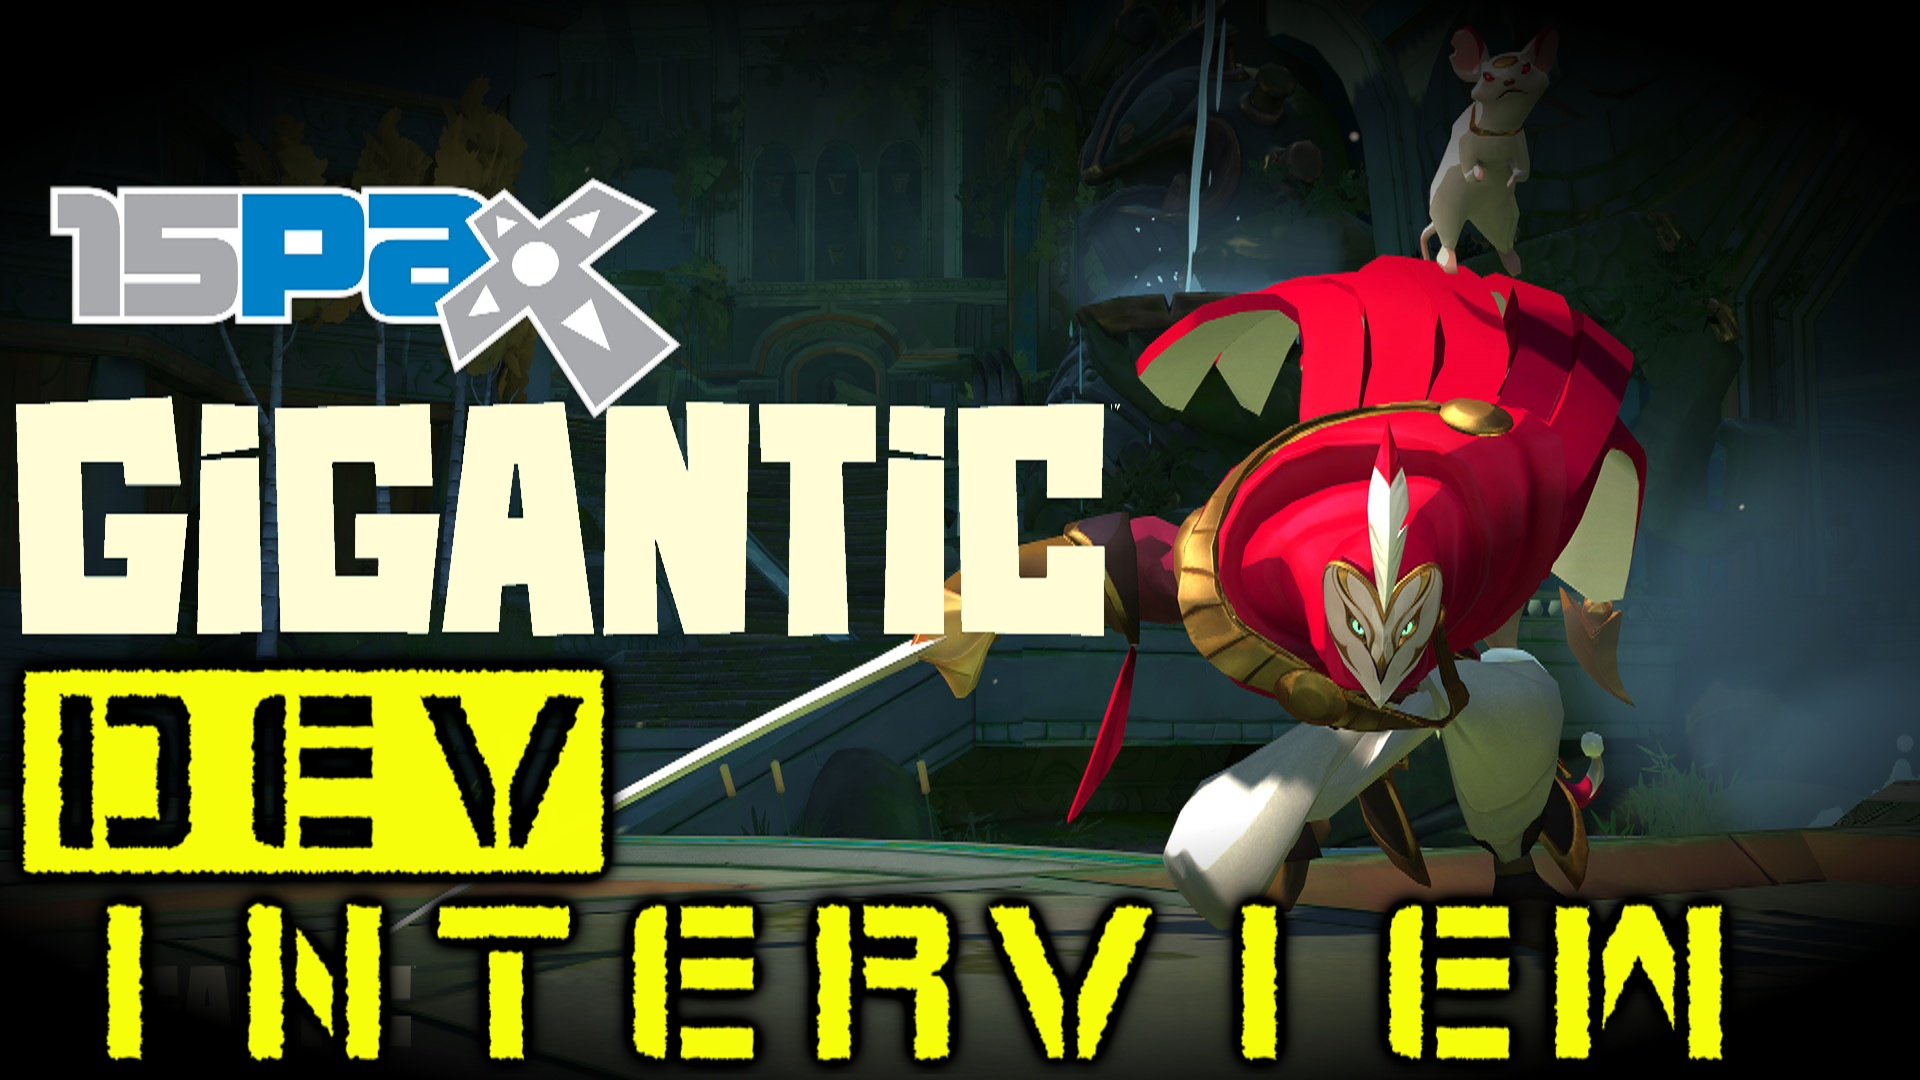 Gigantic - PAX Prime Dev Interview (Secrets & Teasers)